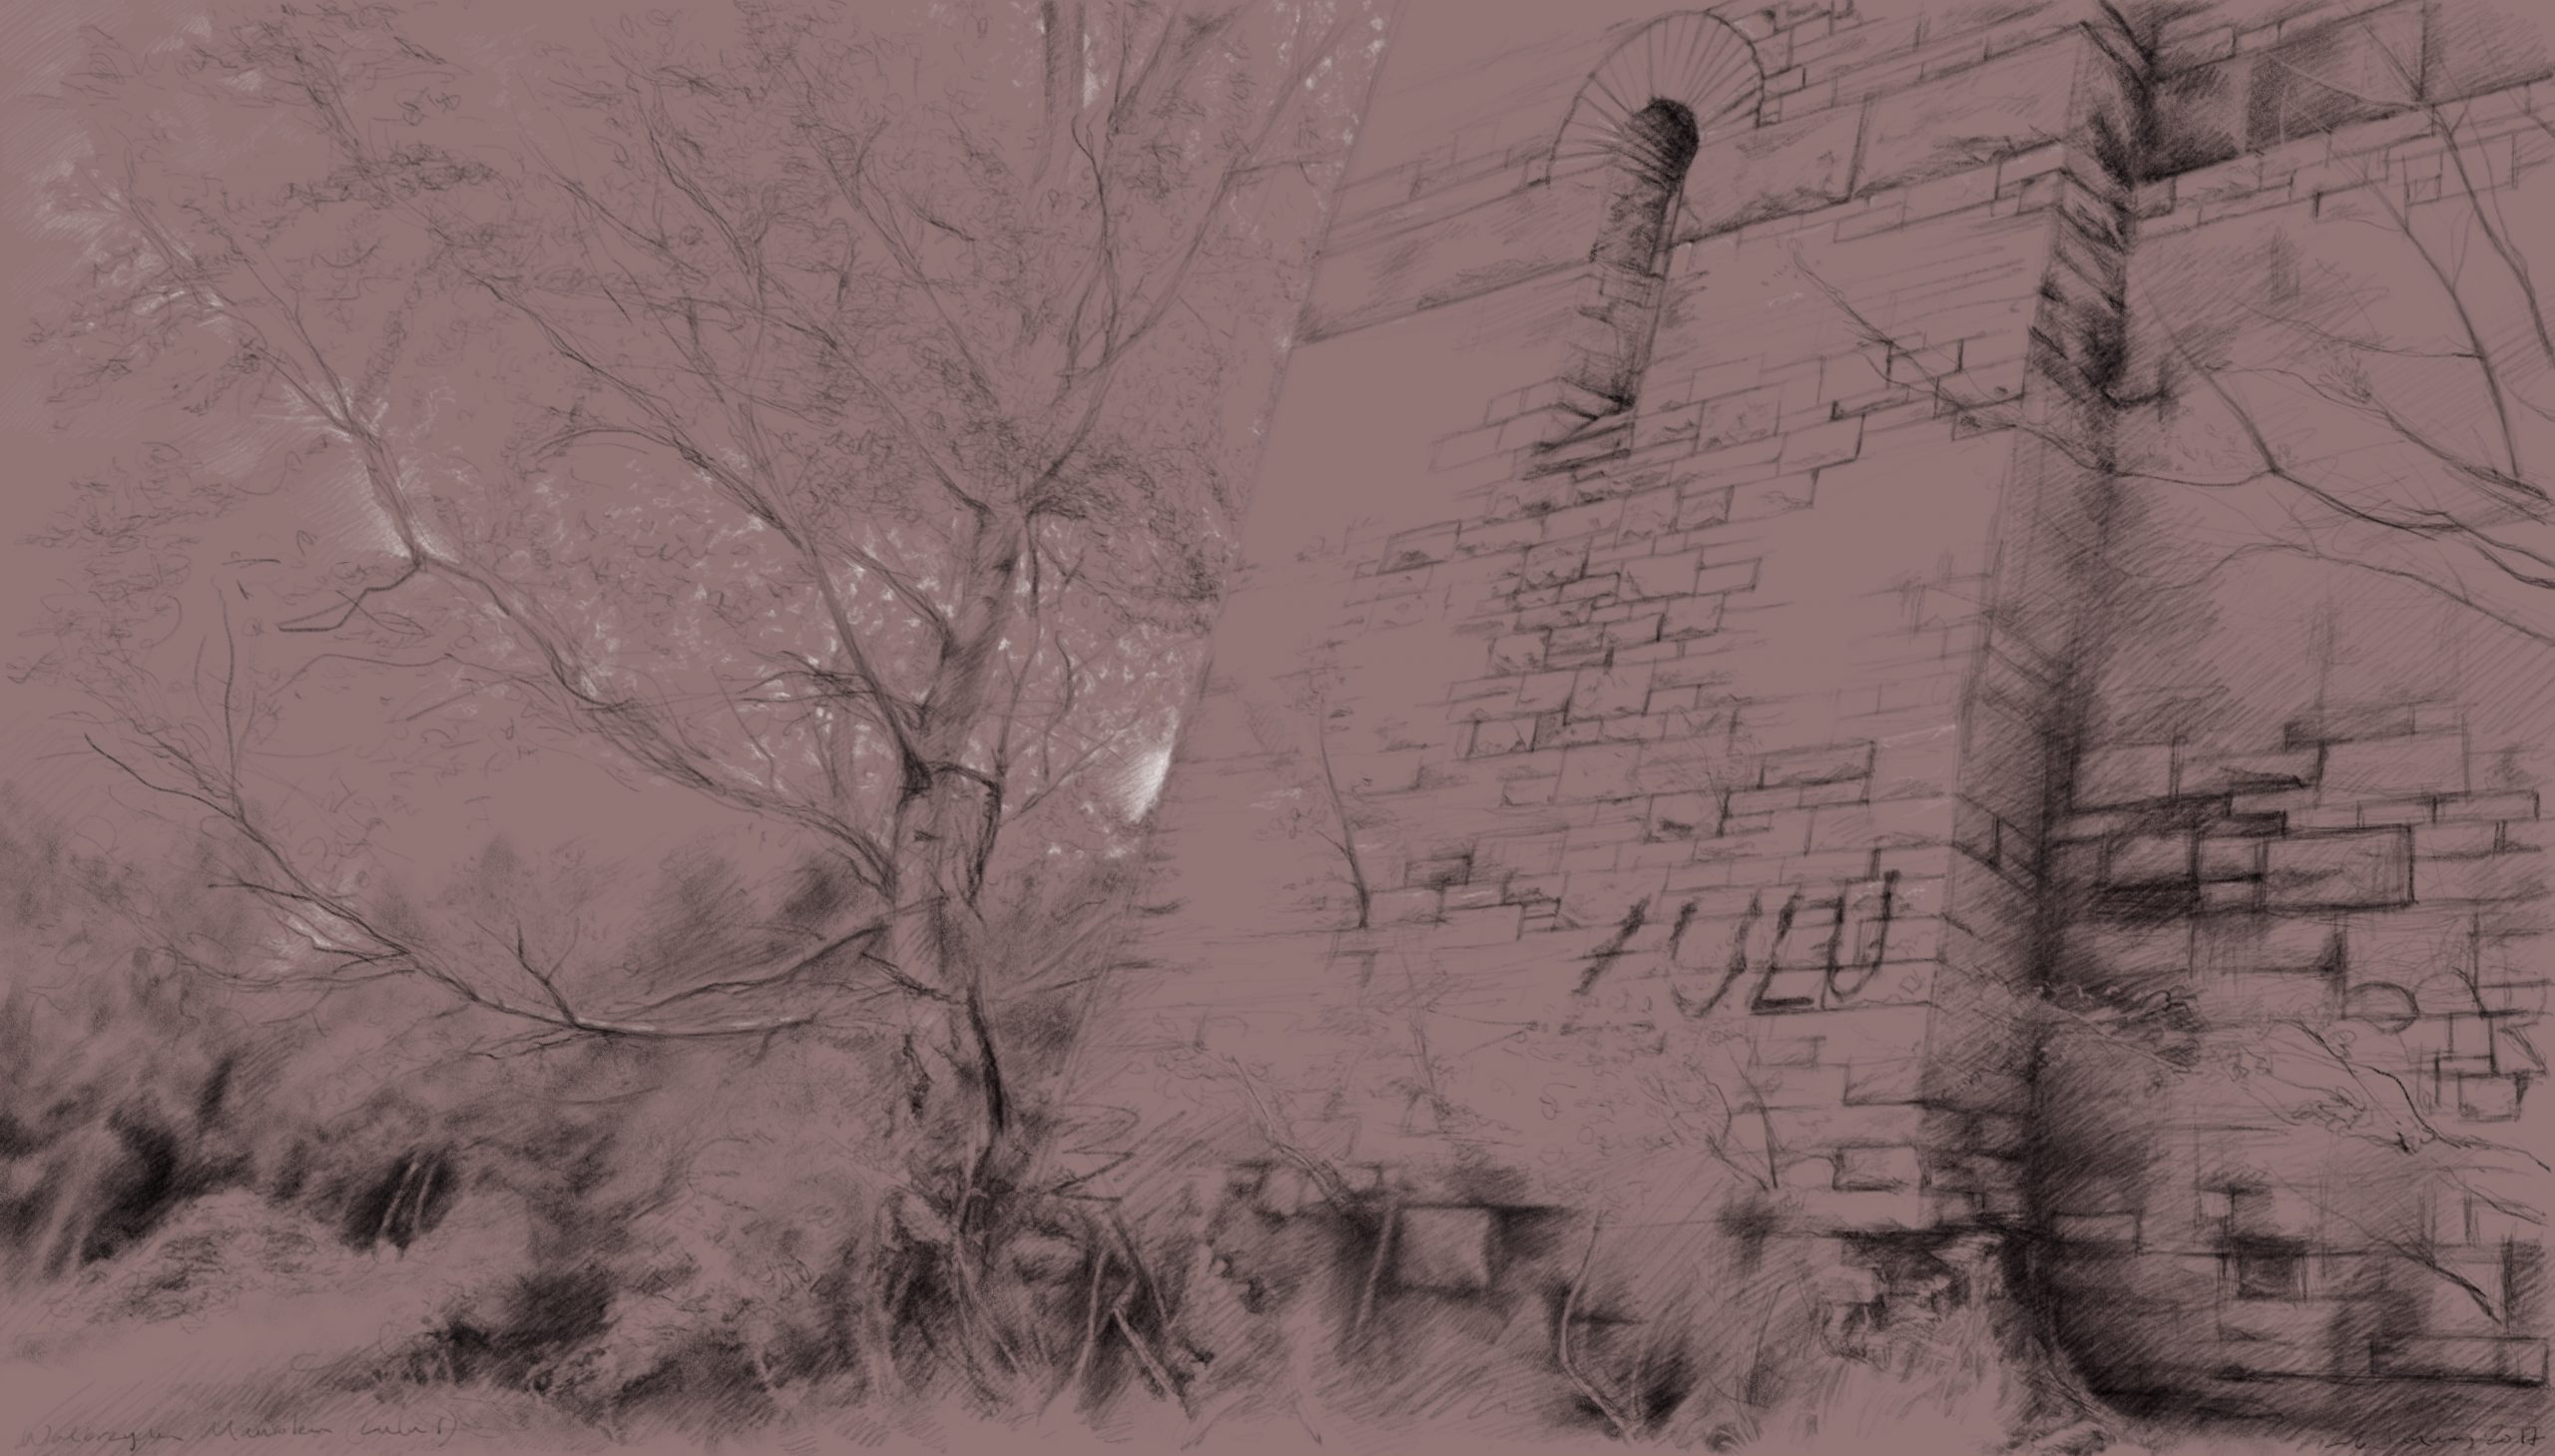 Mik Godley, pencil drawing on pink